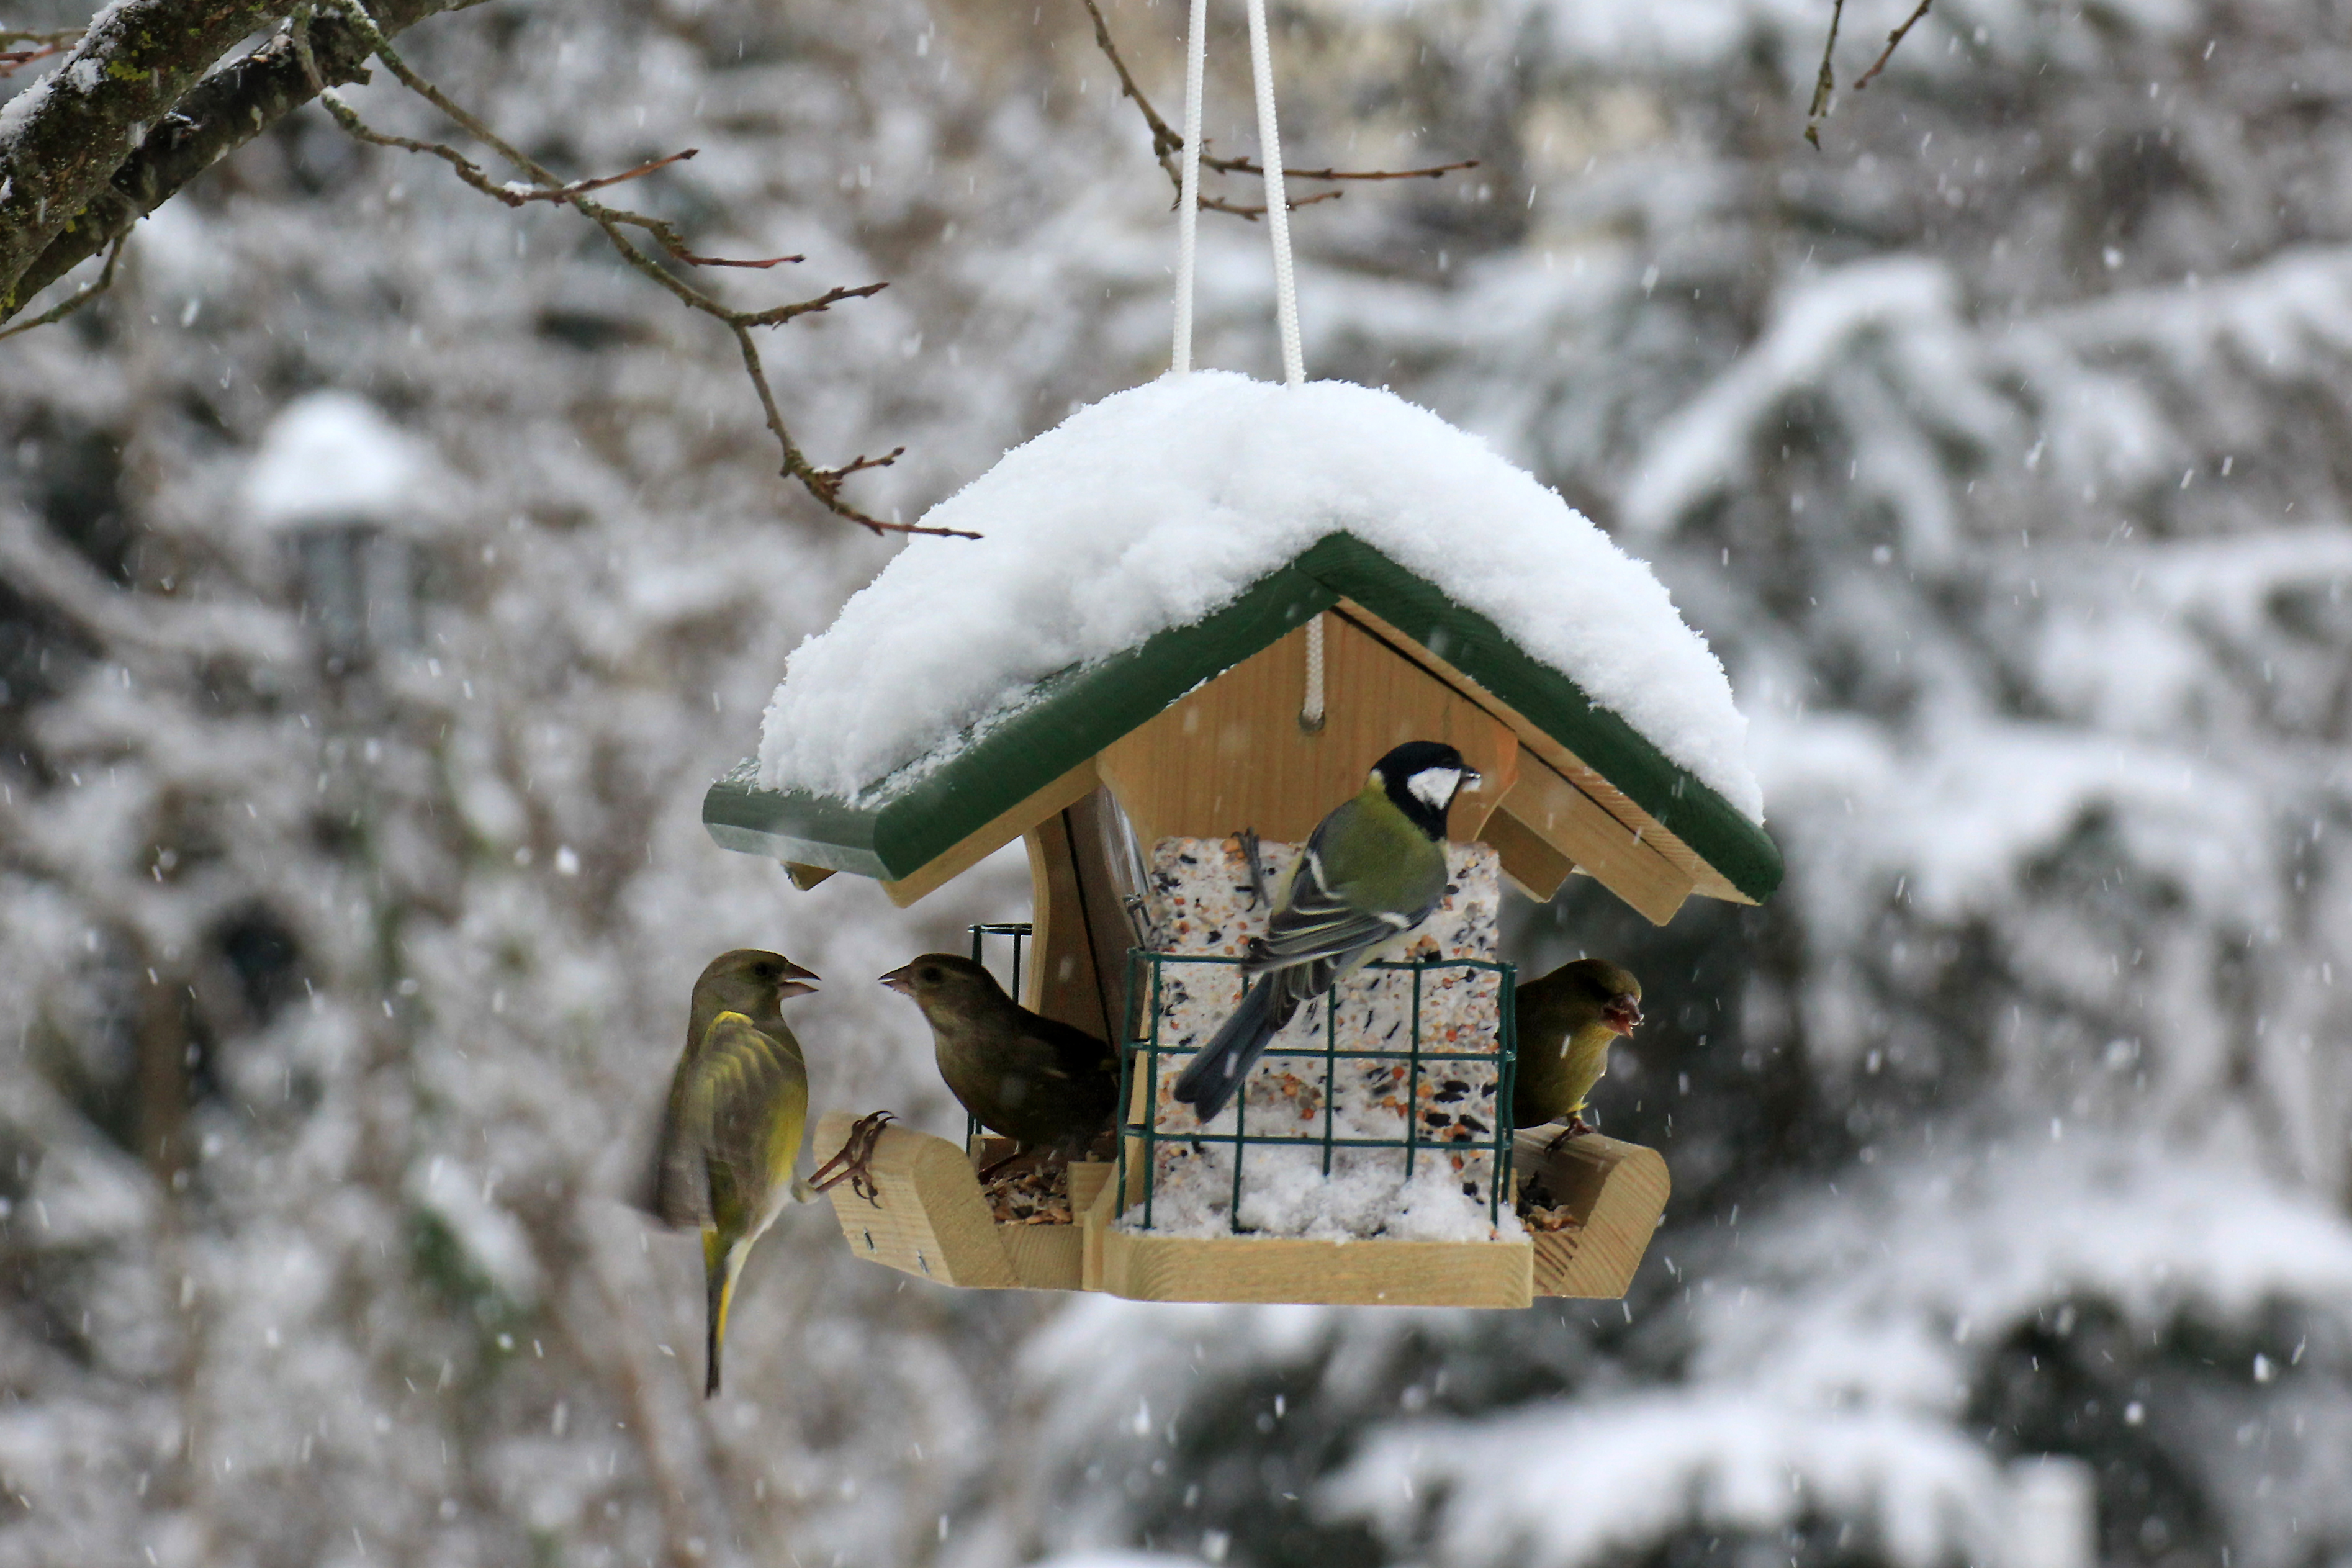 protection-and-food-in-the-winter-bird-house